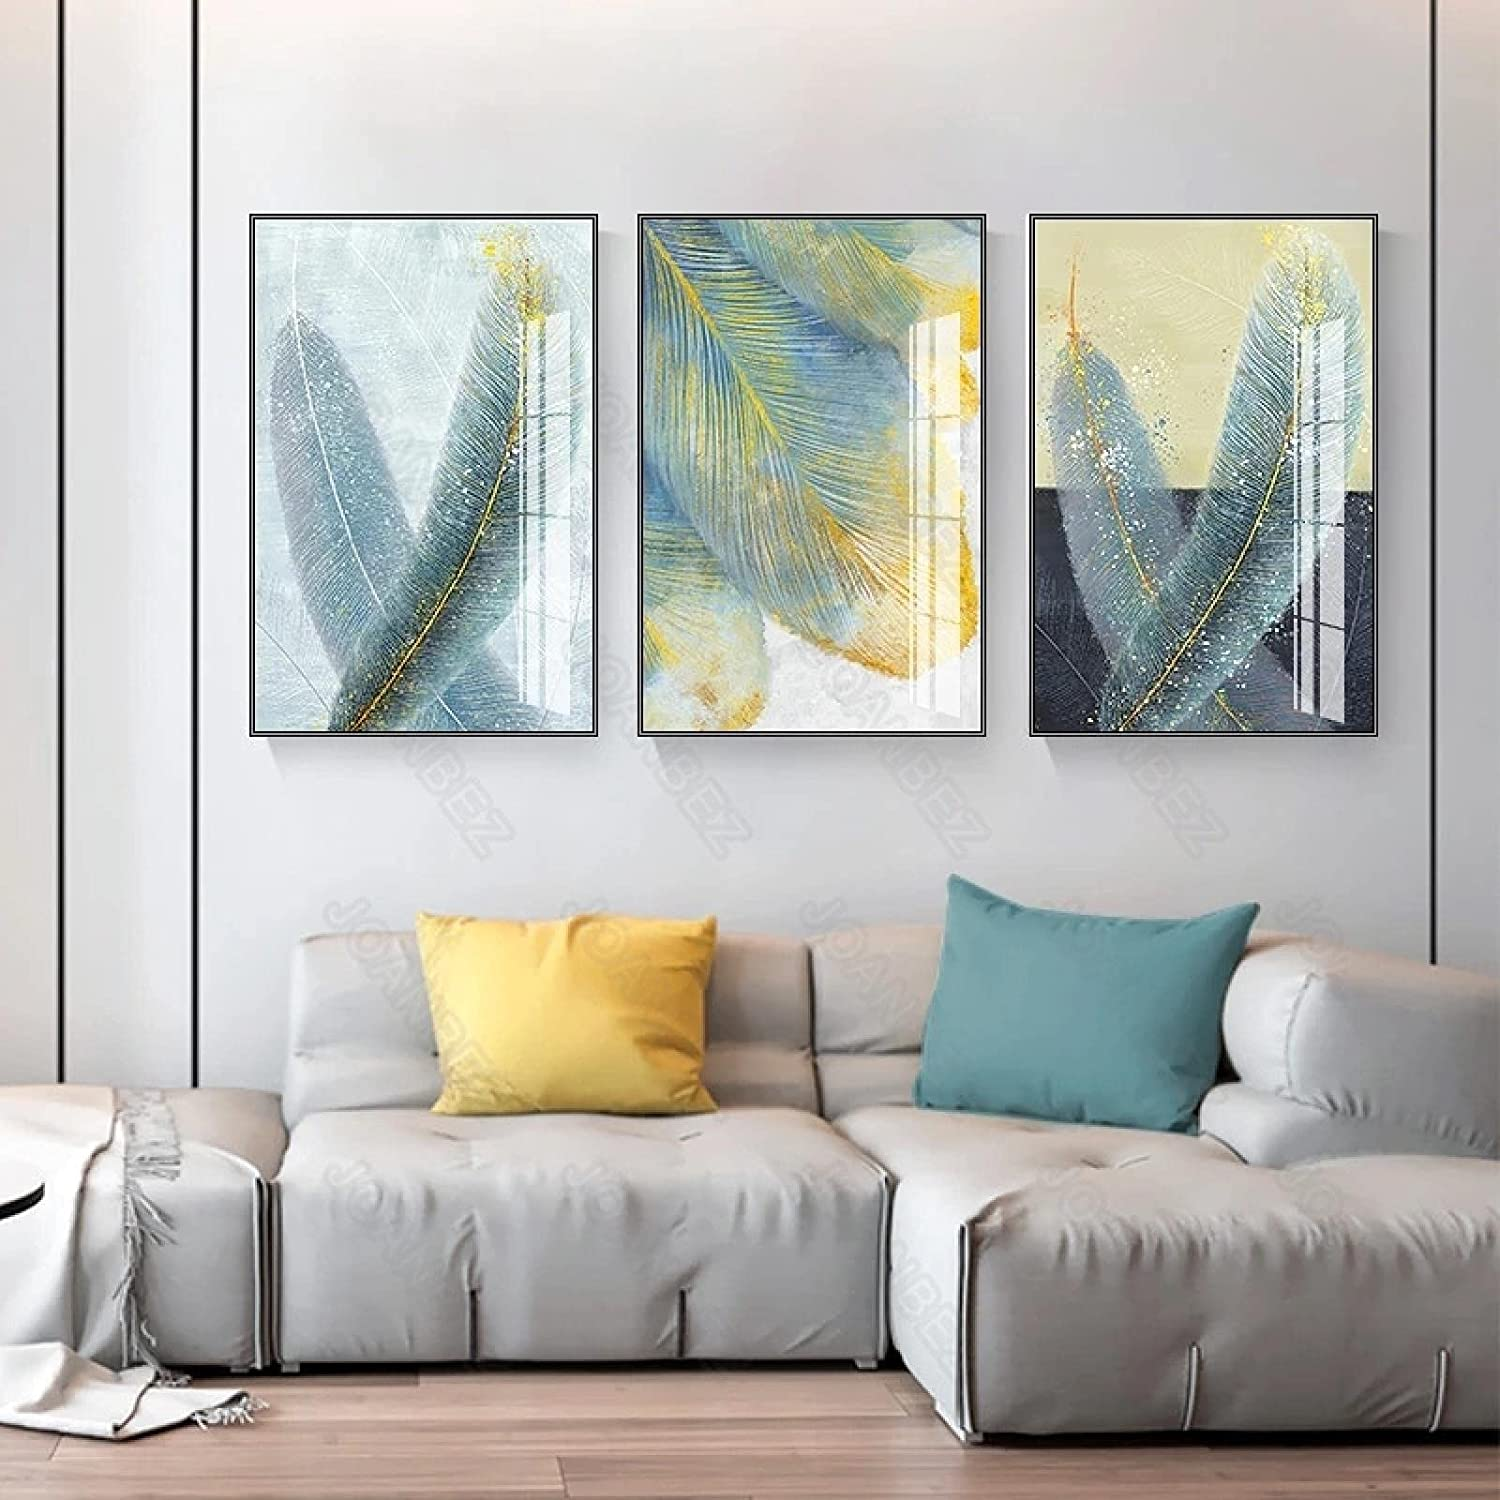 Houston Max 63% OFF Mall Wall Floral Art for Living Room Painting Decor Ligh Style Modern